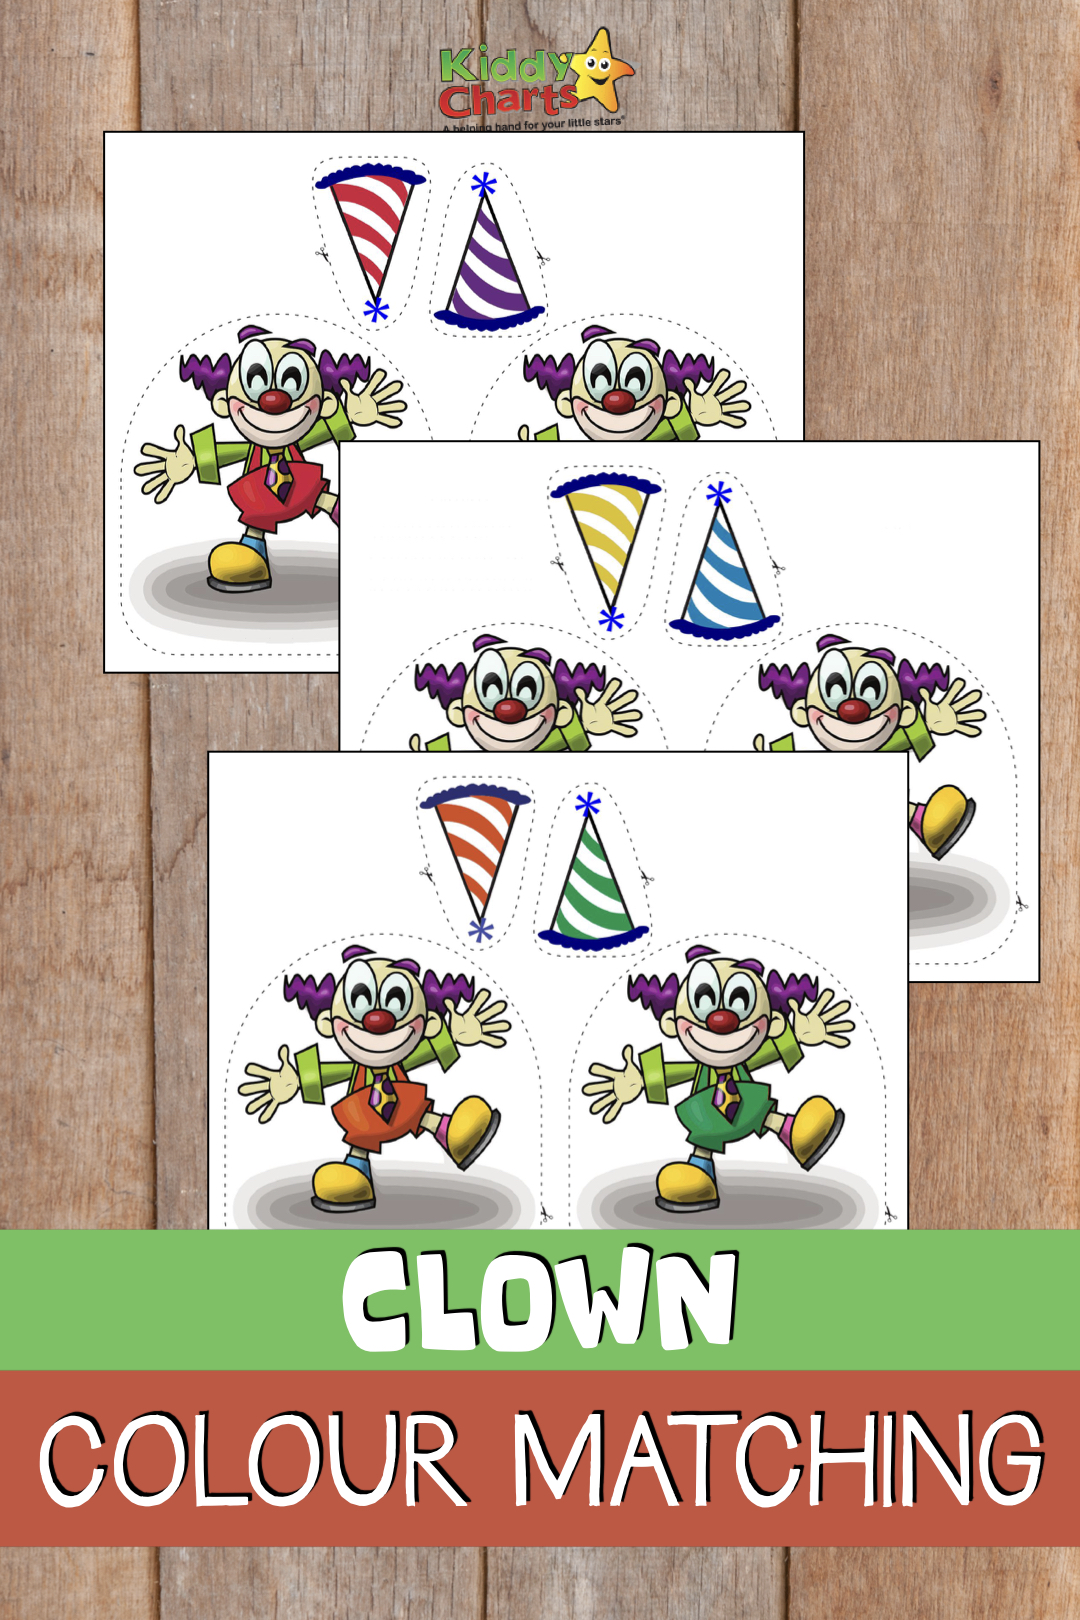 We have a great game to help kids with learning colours - a clown colour matching game. Why not pop over and download now - it's free! #colours #colors #learningcolors #learningcolours #learning #nursery #preschool #clowns